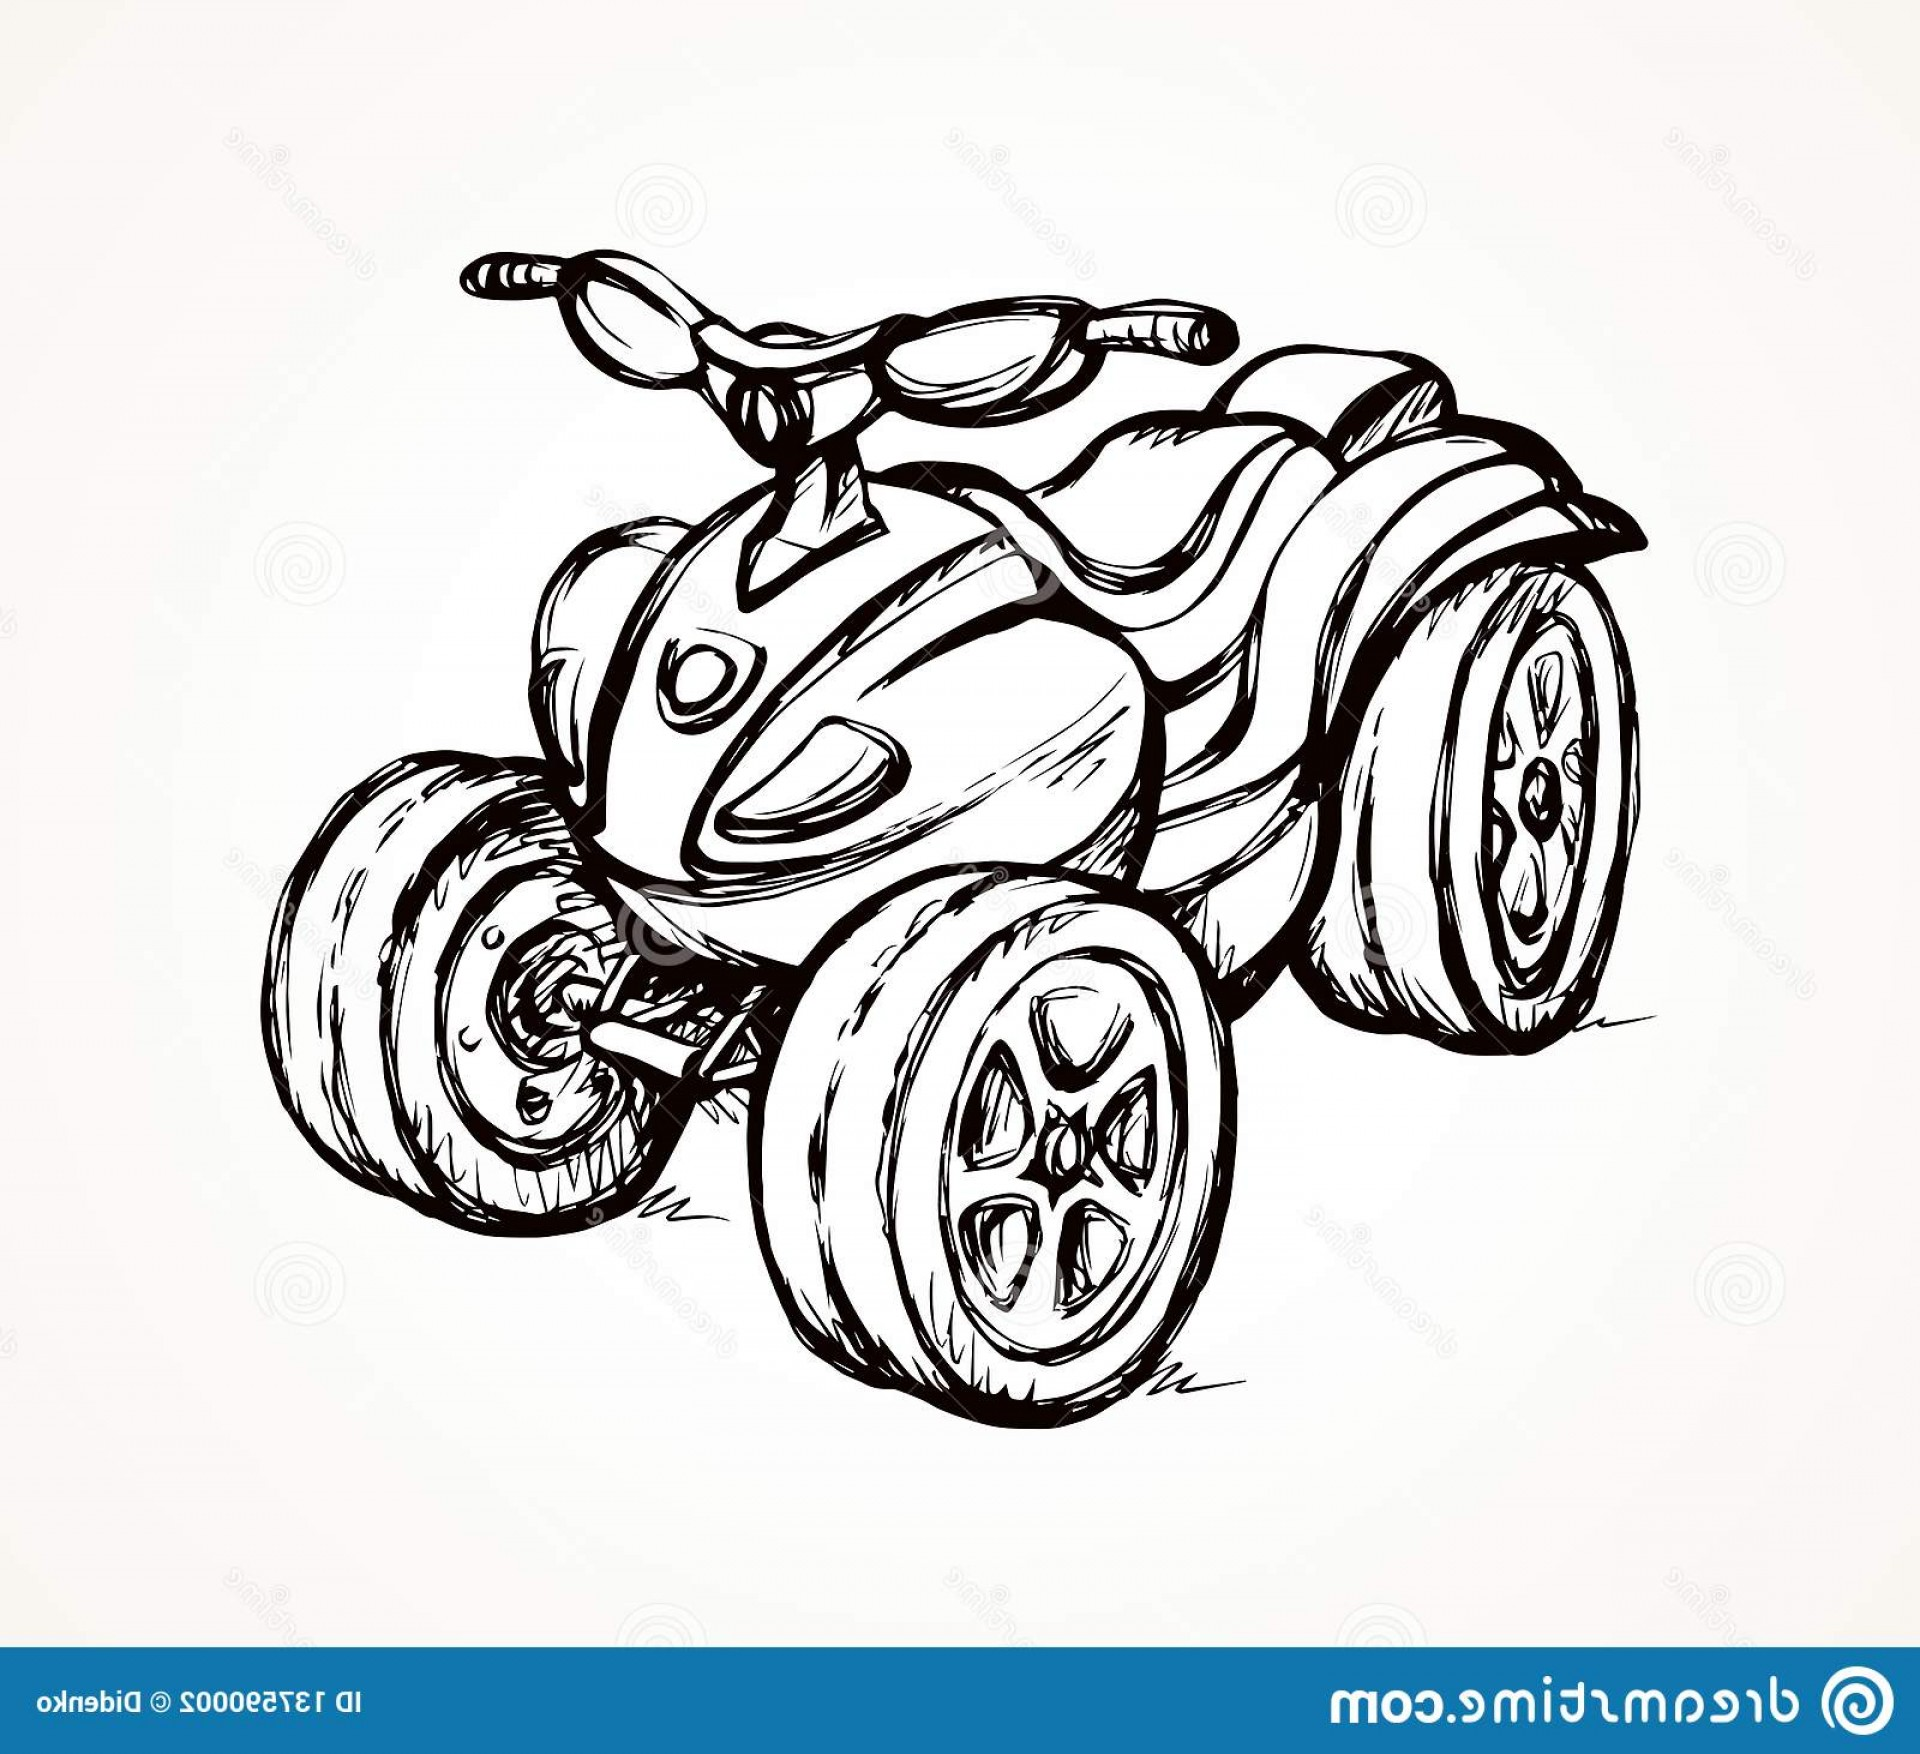 4 Wheeler Vector Art: Quad Bike Vector Drawing Big Three Wheeler Moto Machine Isolated White Desert Sand Background Freehand Outline Ink Hand Drawn Image